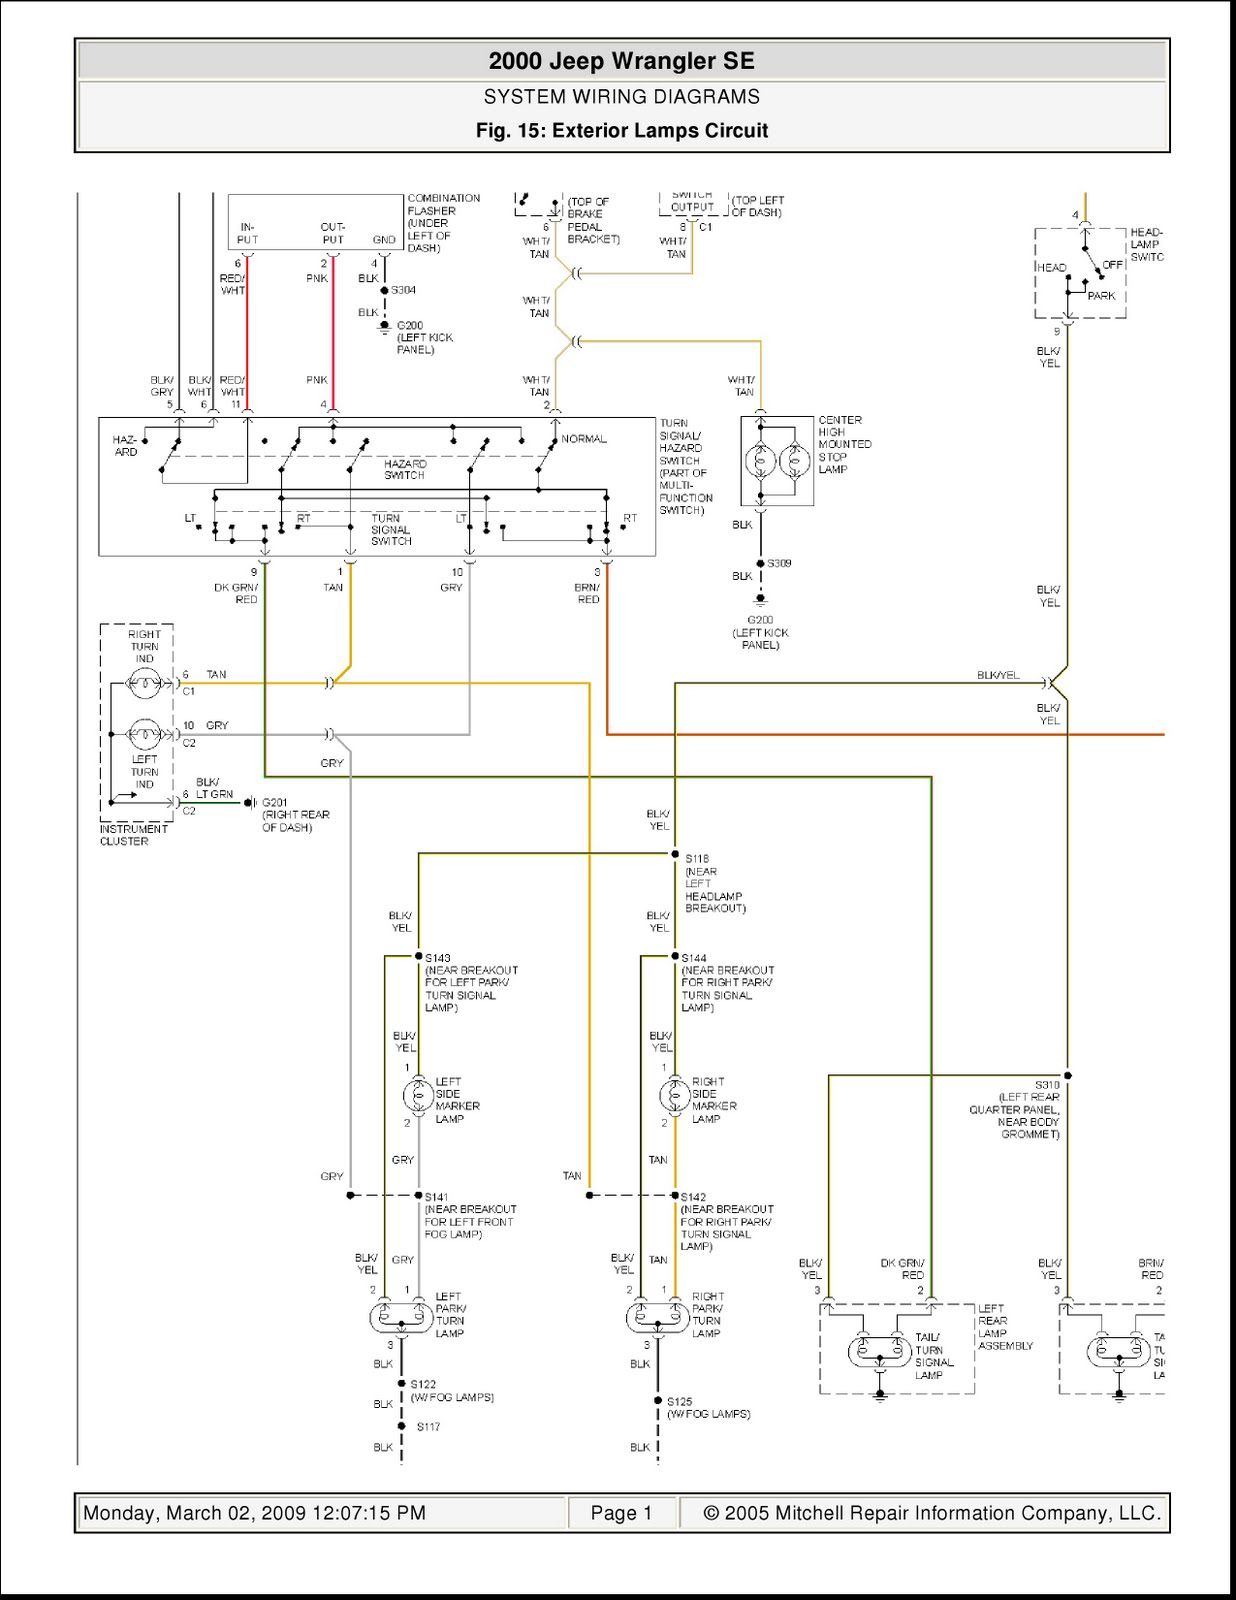 2000 Wrangler Wiring Diagram Archive Of Automotive Jeep Yj Schematic Tj Schematics Rh Thyl Co Uk Headlight Turn Signal